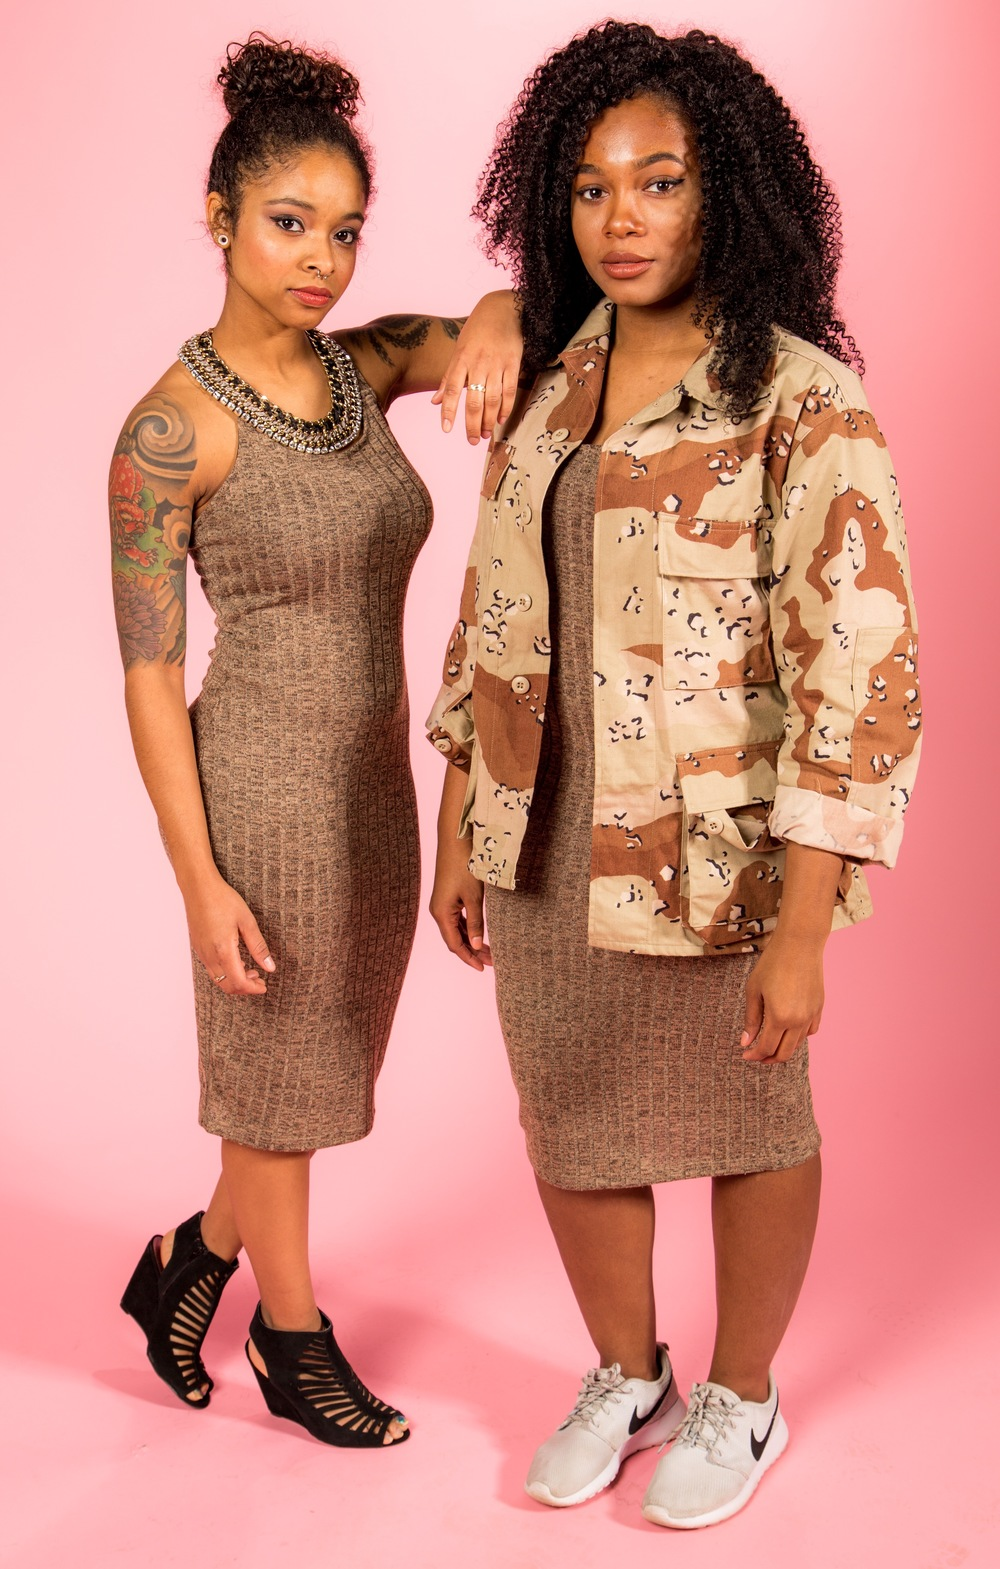 Cross Back Dress - $16.80 // Desert Camo Jacket - $34.00